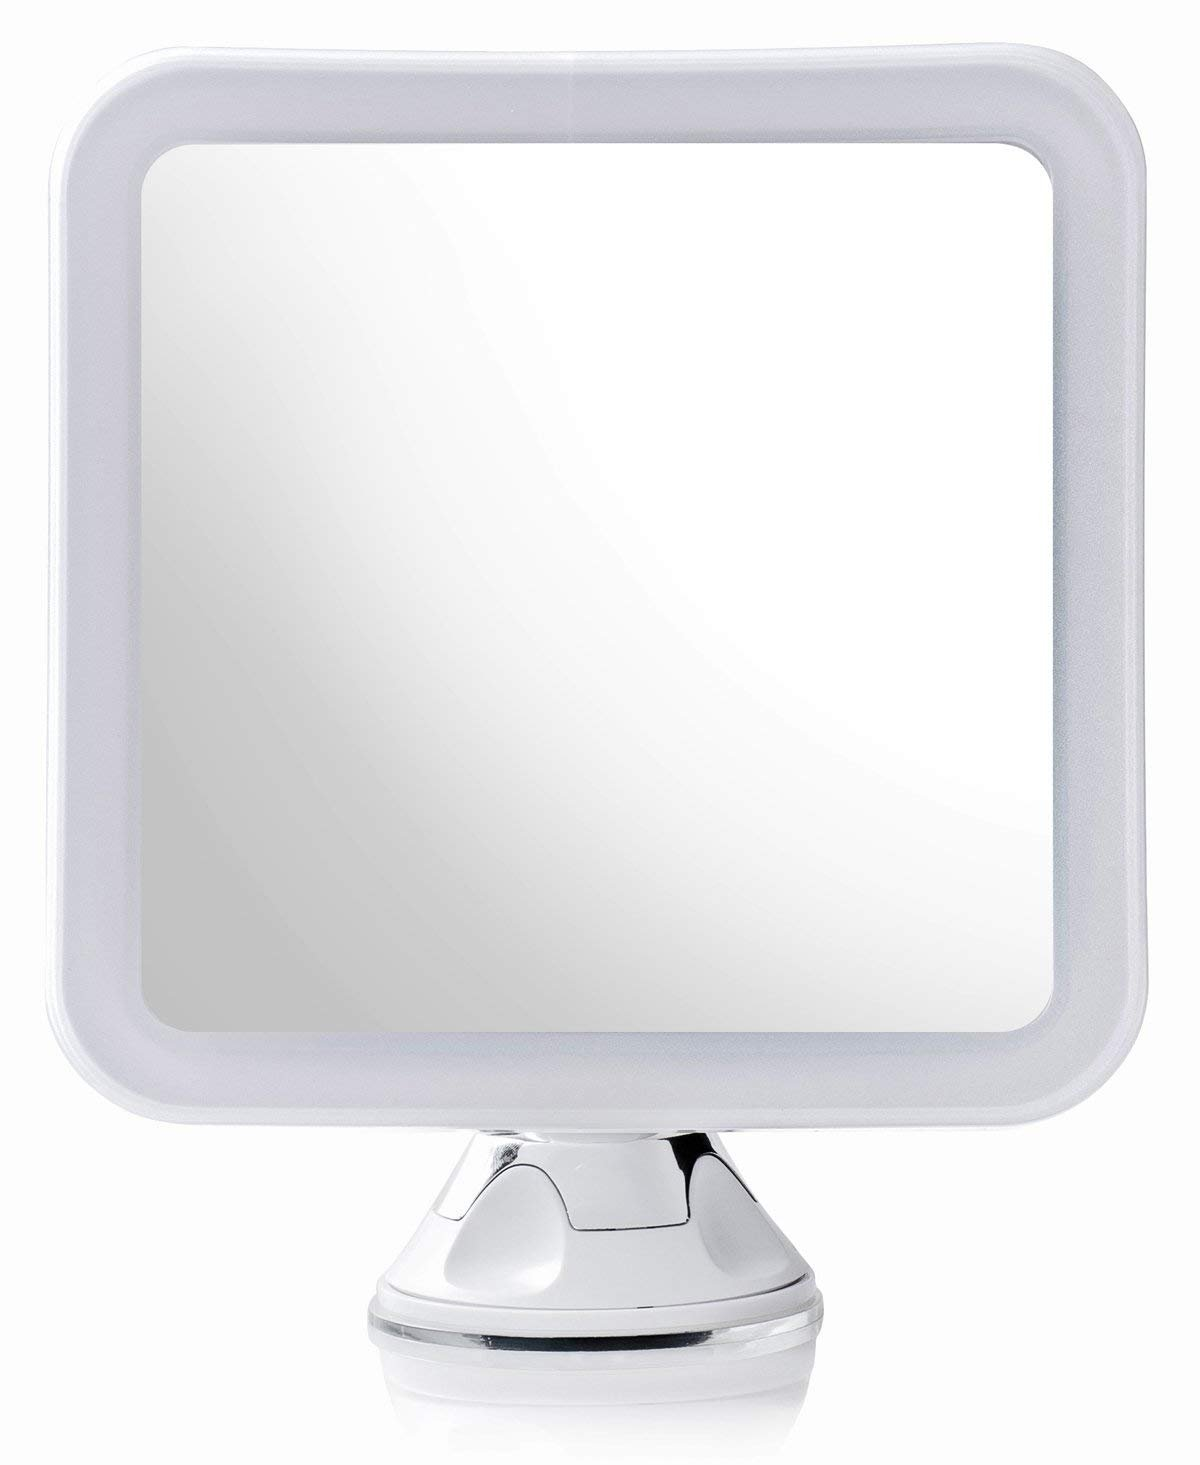 Secura Magnifying Vanity Lighted Makeup Mirror 10X with Natural Warm and White LED lighting and Locking Suction